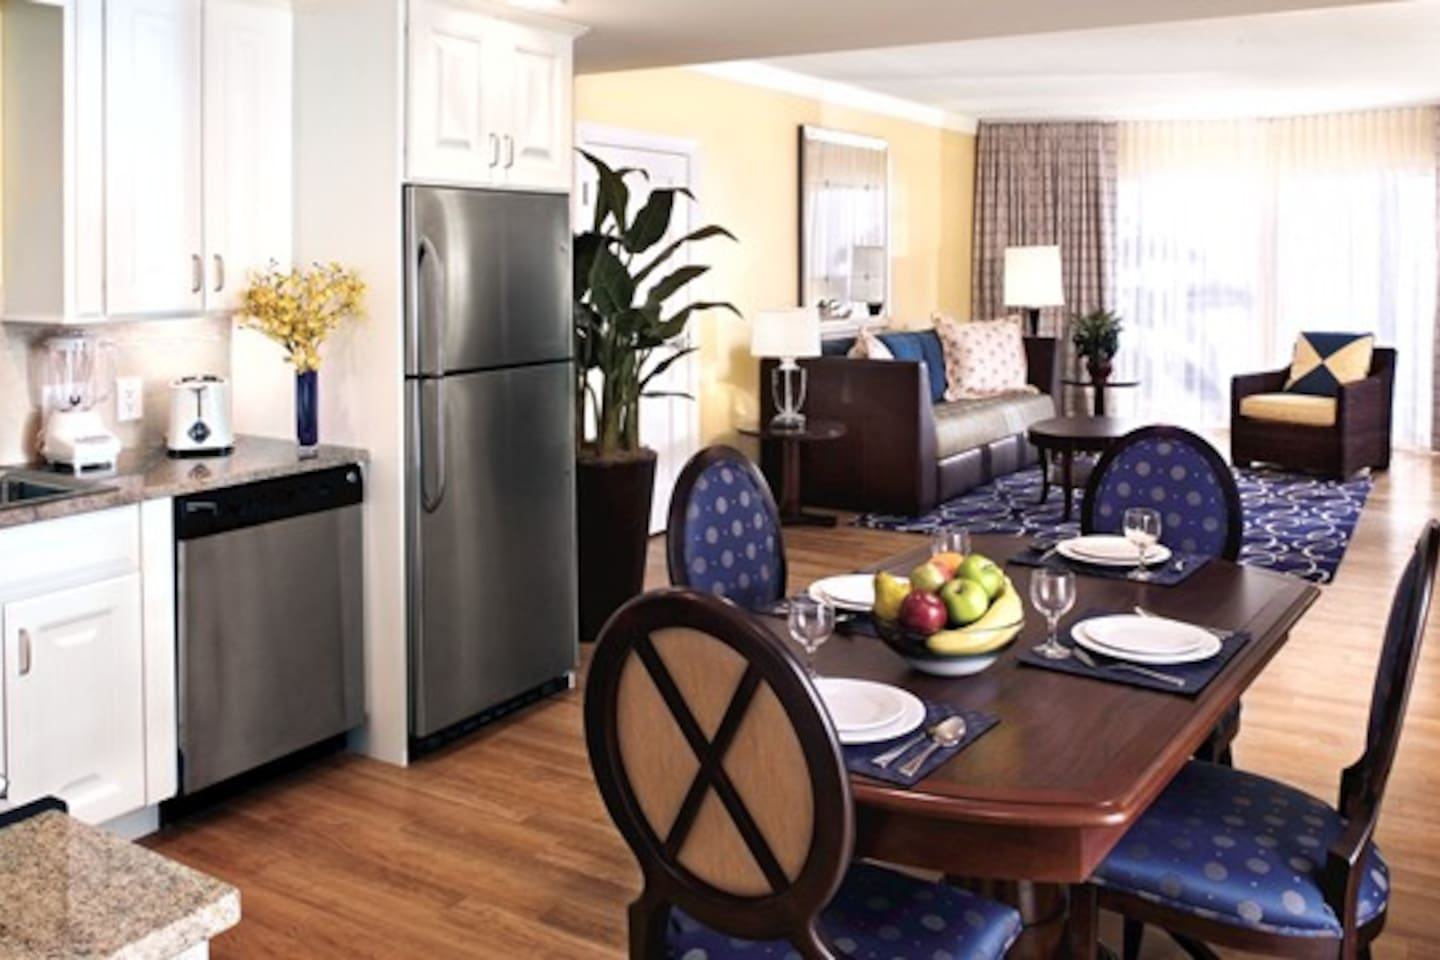 Full kitchen, dining, living room, Queen sofabed, king bedroom, bath with tub and shower, balcony.  Washer/Dryer in unit, two TVs, sleeps 4.